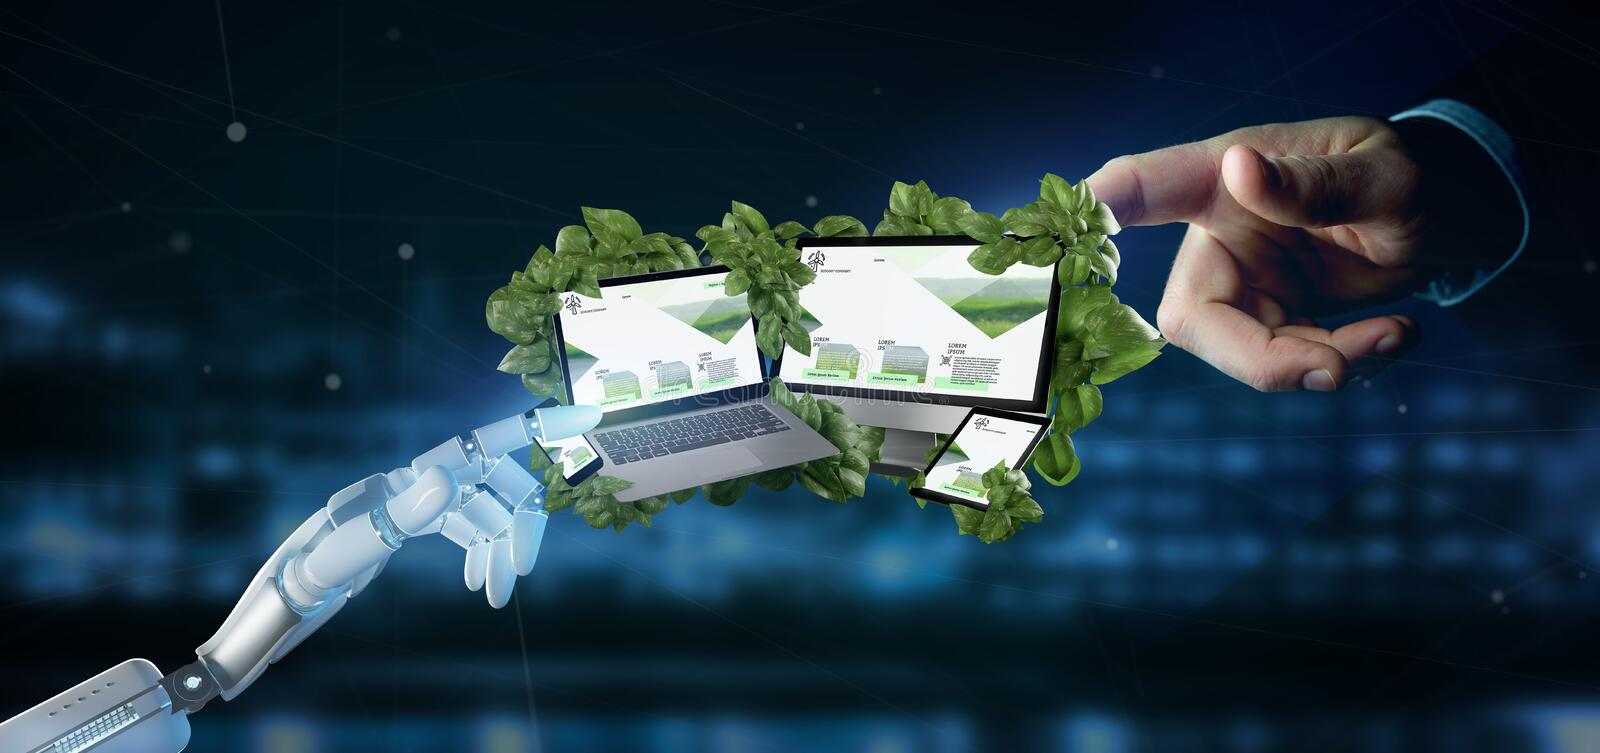 Cyborg holding a Connected devices surrounding by leaves 3d rend. View of a Cyborg holding a Connected devices surrounding by leaves 3d rendering stock image